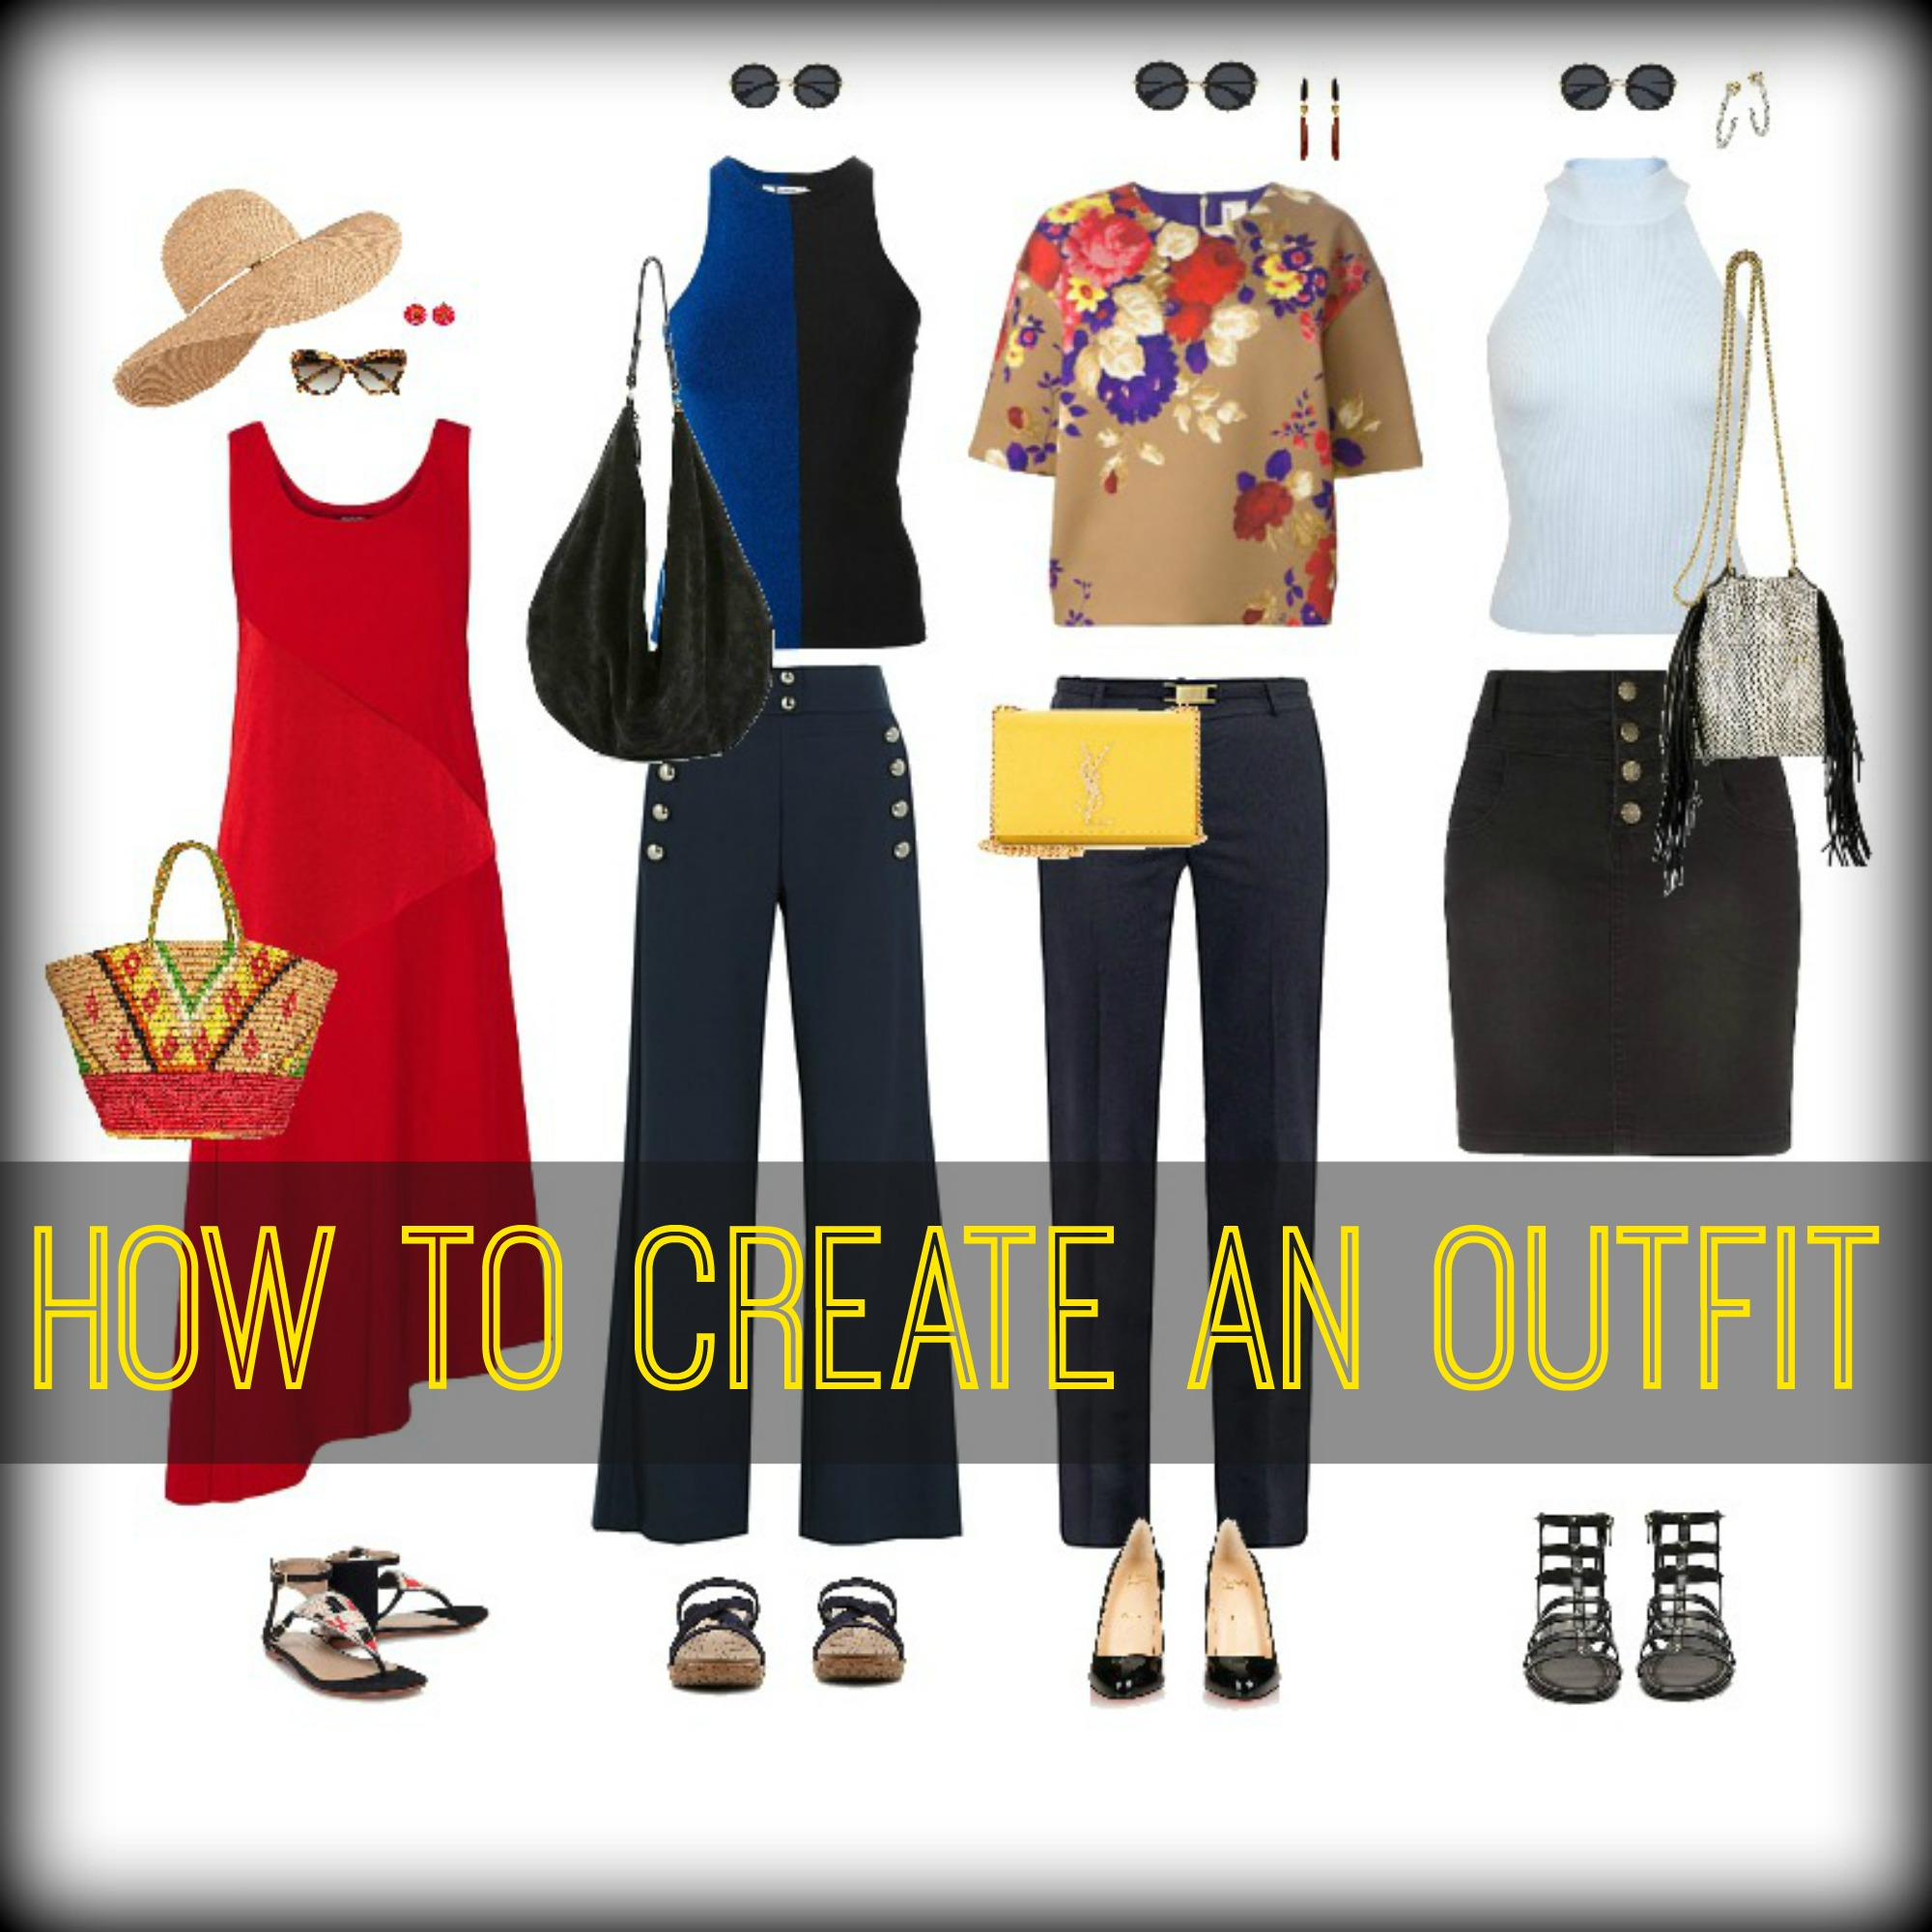 HOW TO CREATE AN OUTFIT